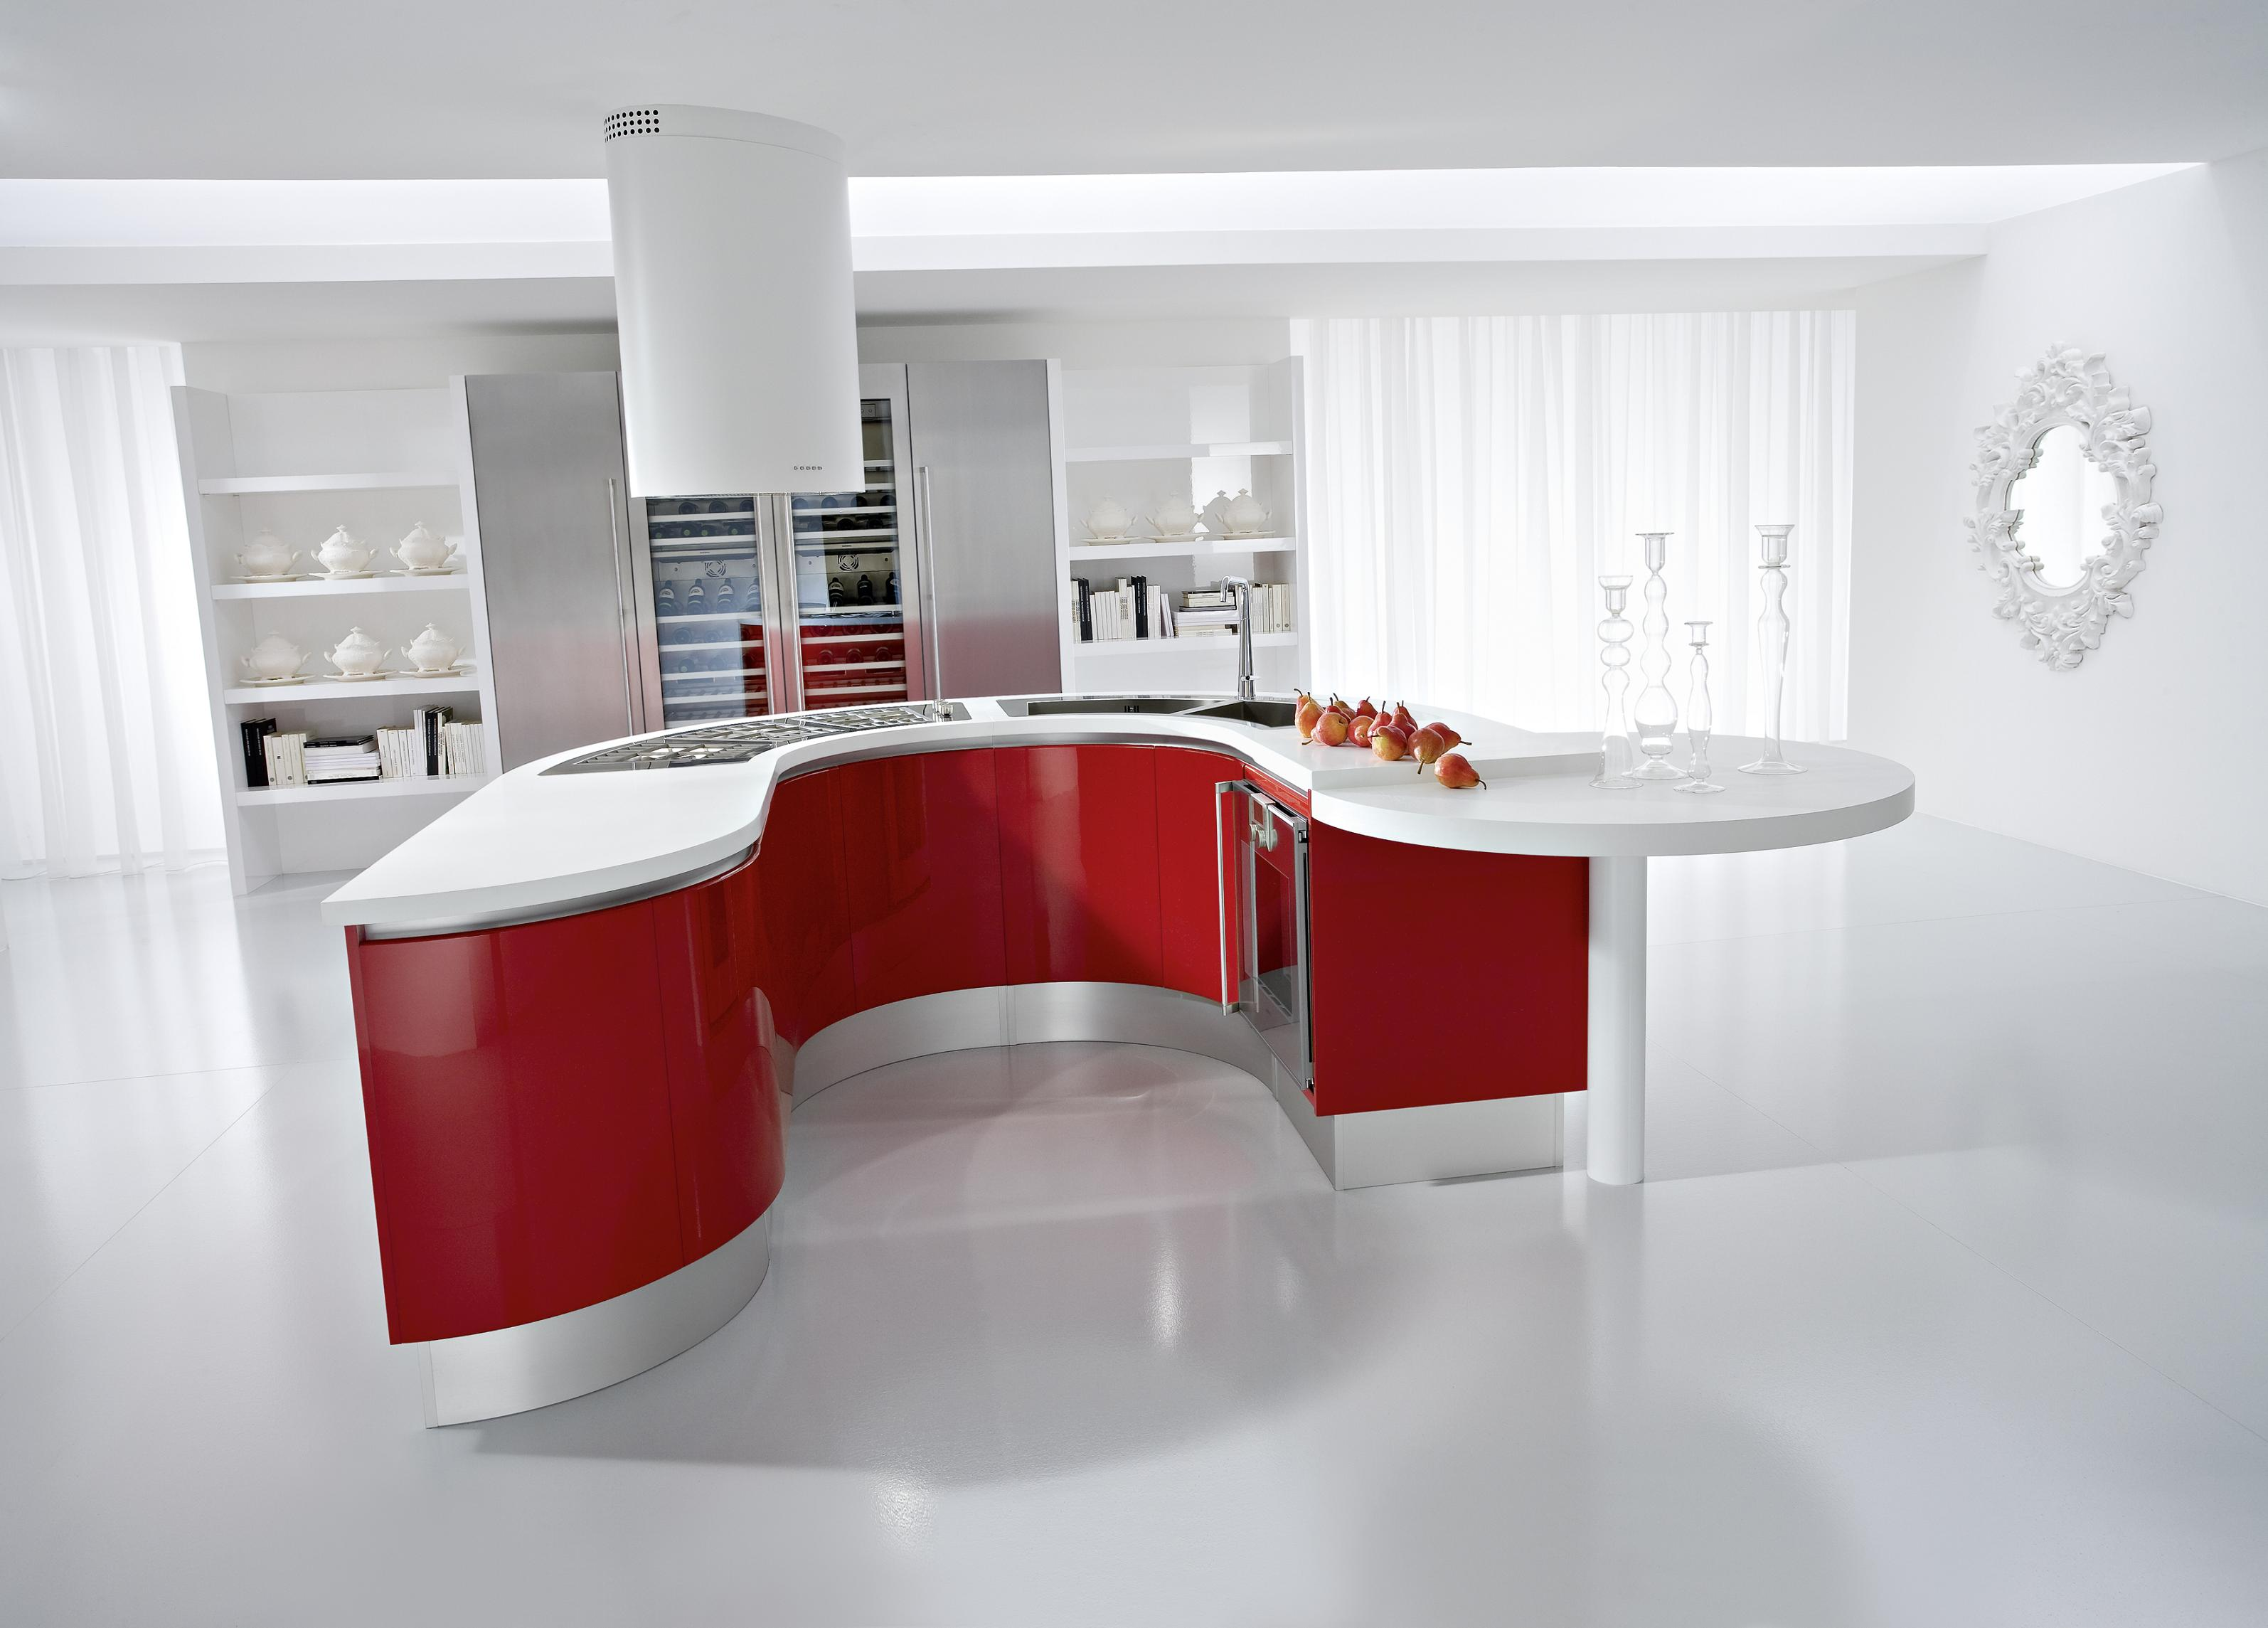 Designer European Kitchens 2009 march | european-kitchen-design